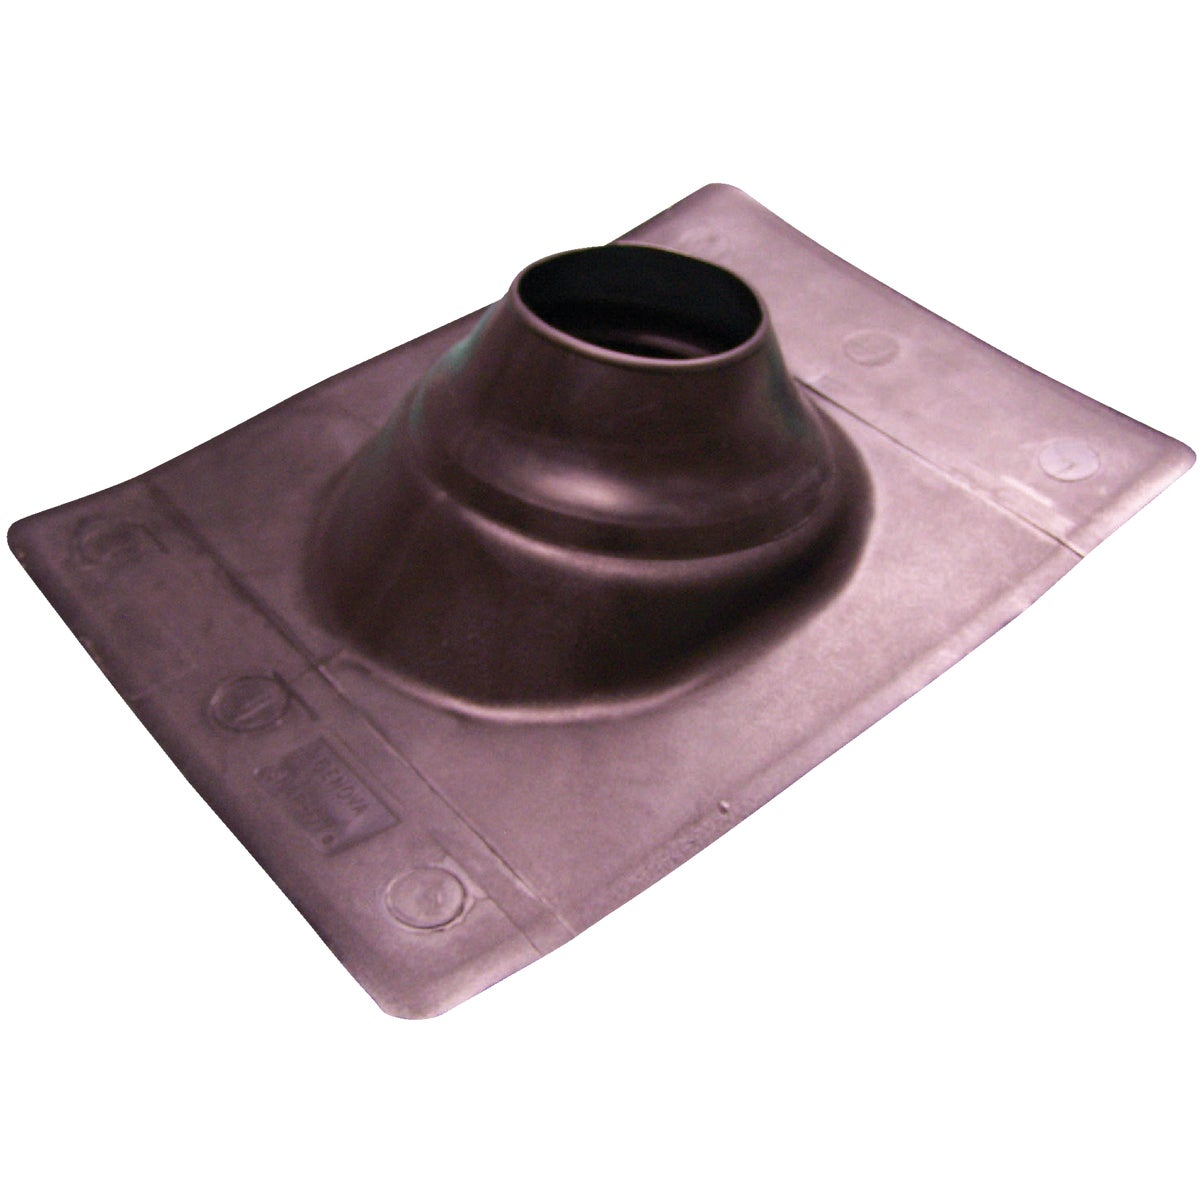 "4"" THERMO ROOF FLASHING - 14564 by Genova Inc"